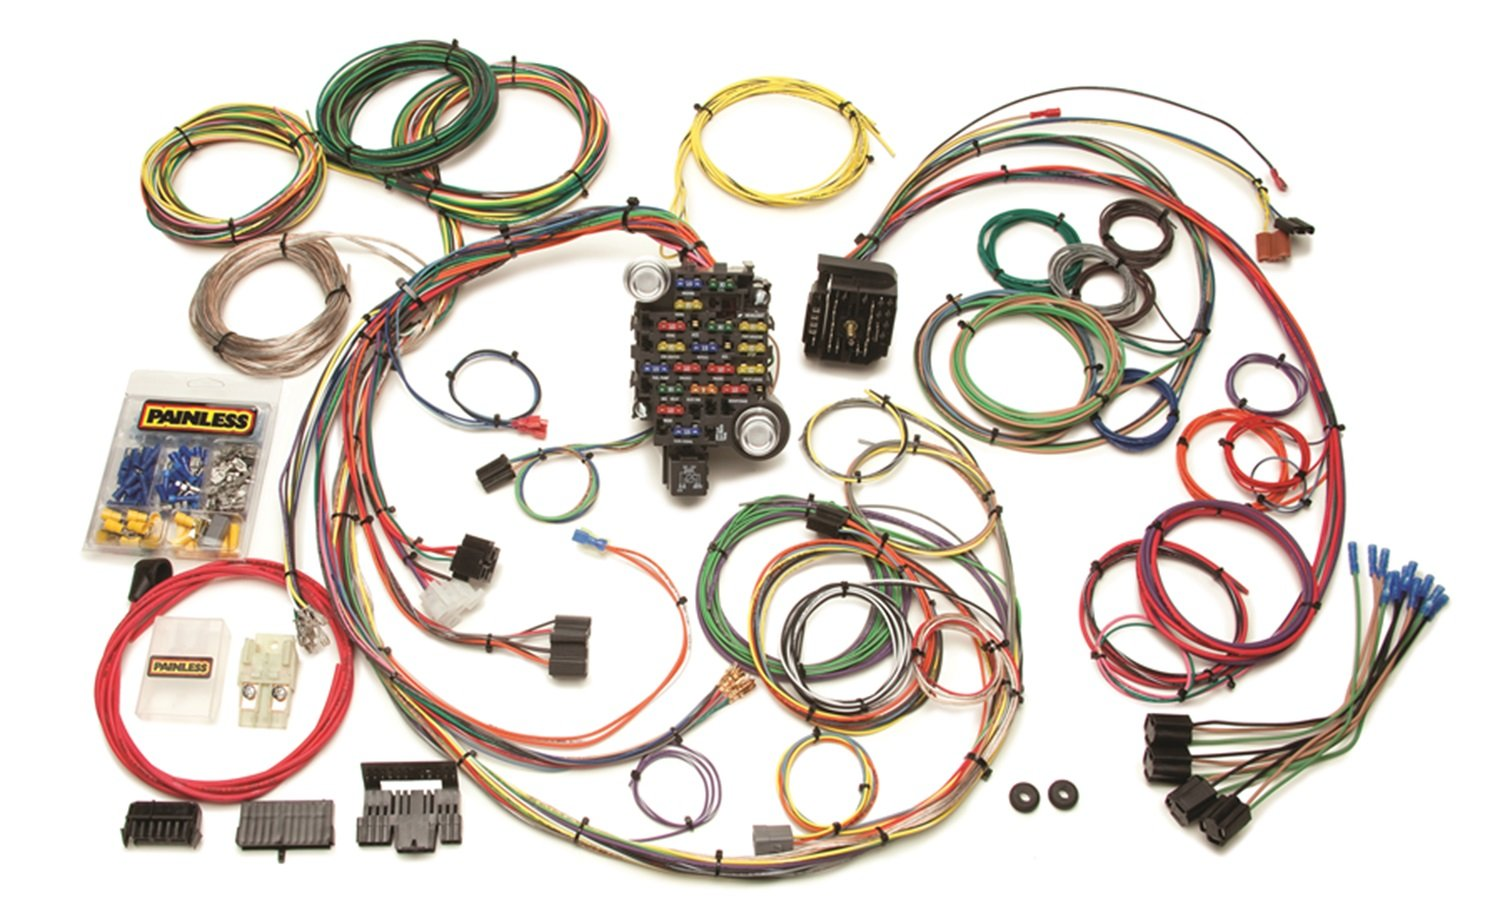 71RvMxx3qDL._SL1500_ amazon com painless 20102 custom wiring harness automotive painless wiring harness at soozxer.org